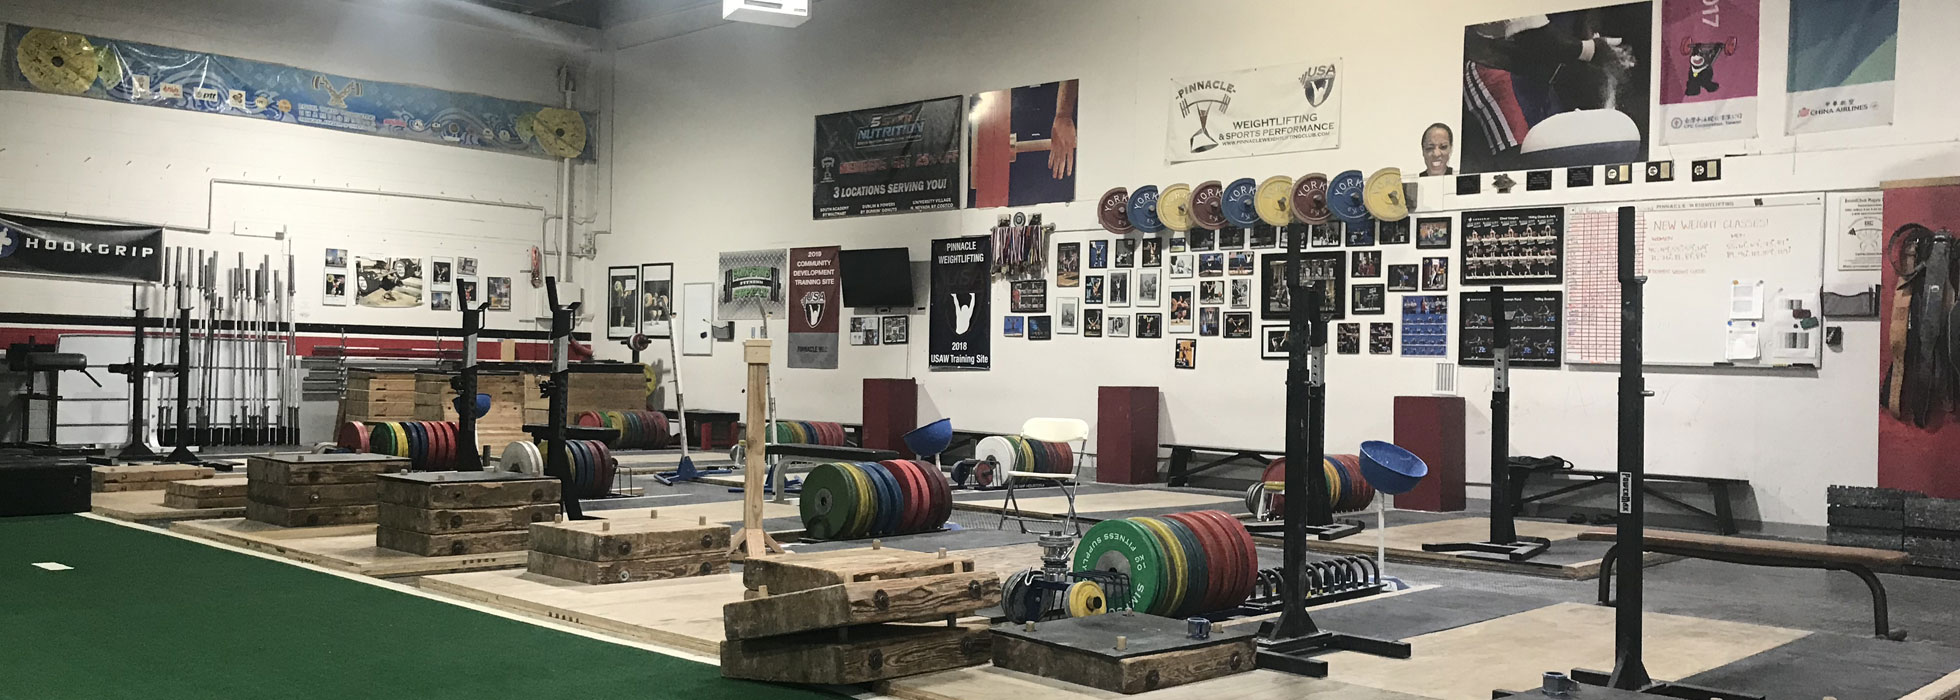 Why Pinnacle Weightlifting Is Ranked One Of The Best Gyms In Colorado Springs CO